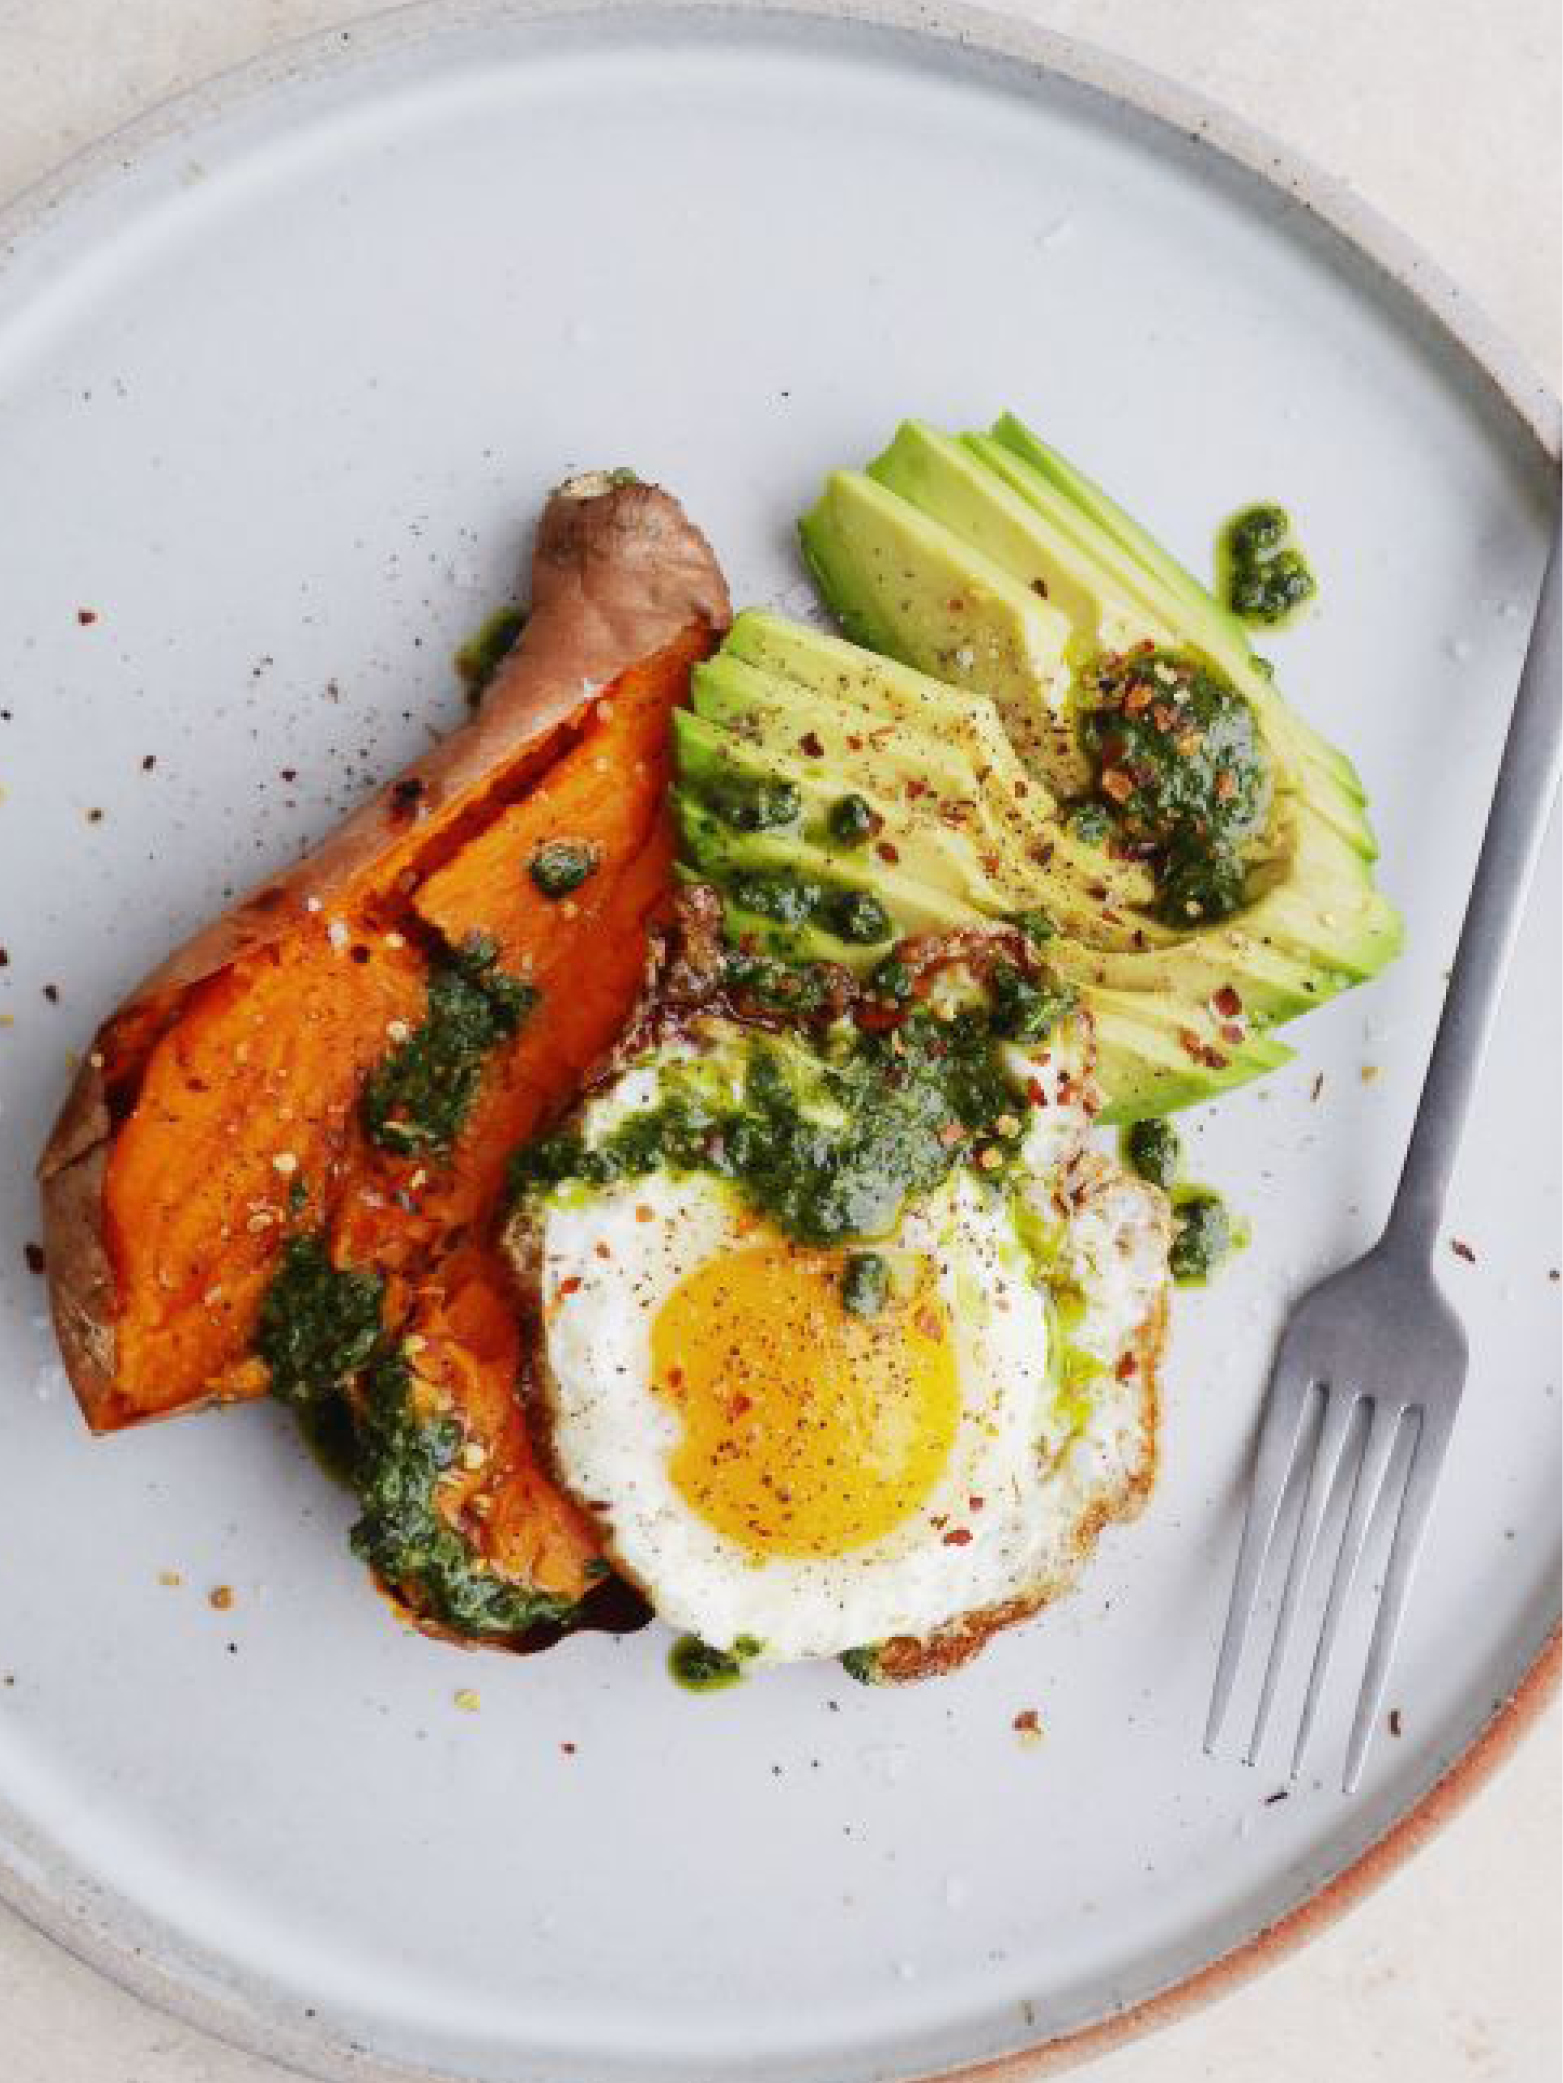 Loaded Baked Sweet Potatoes with Avocado, Pesto and Fried Eggs  Delish